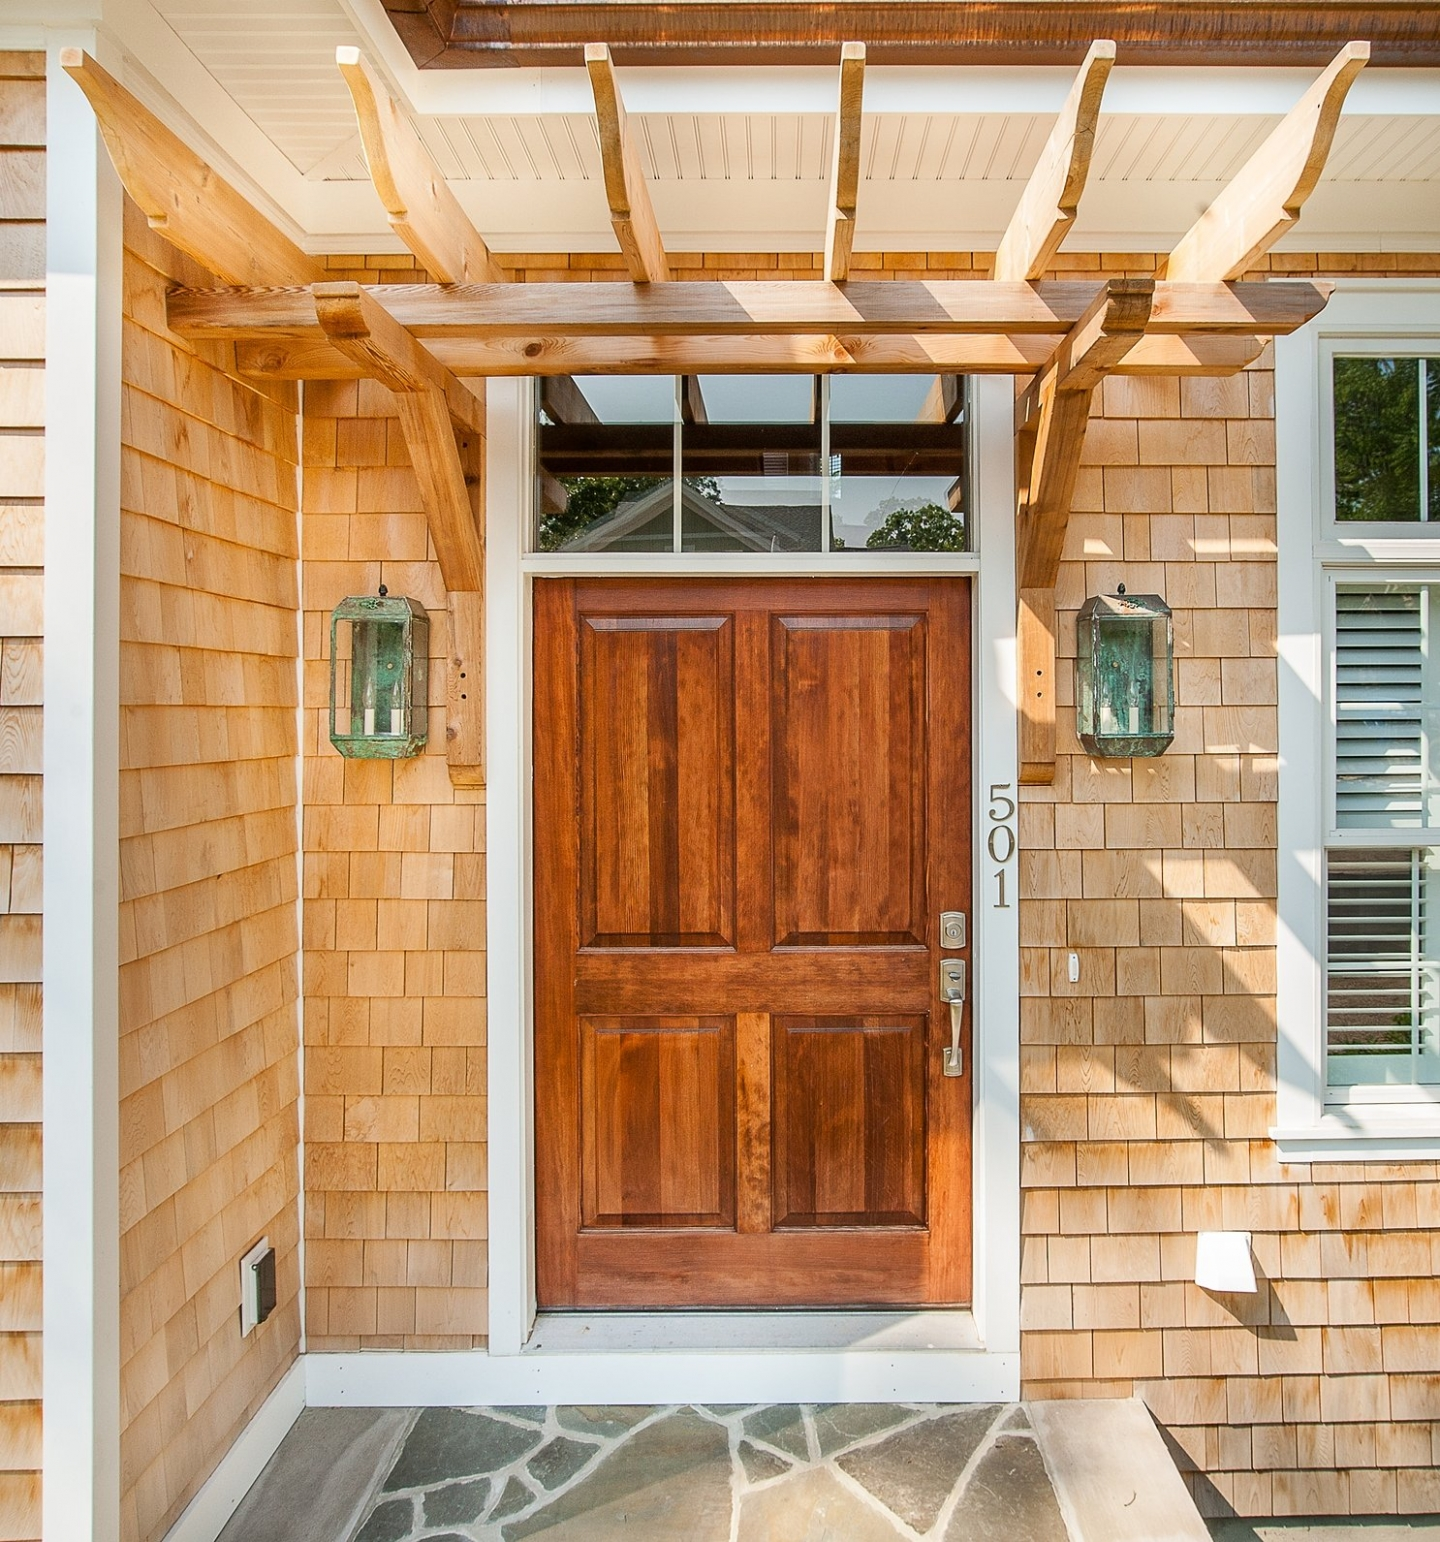 Red wood exterior doors available with custom stain colors and antique light fixtures and cedar arbor